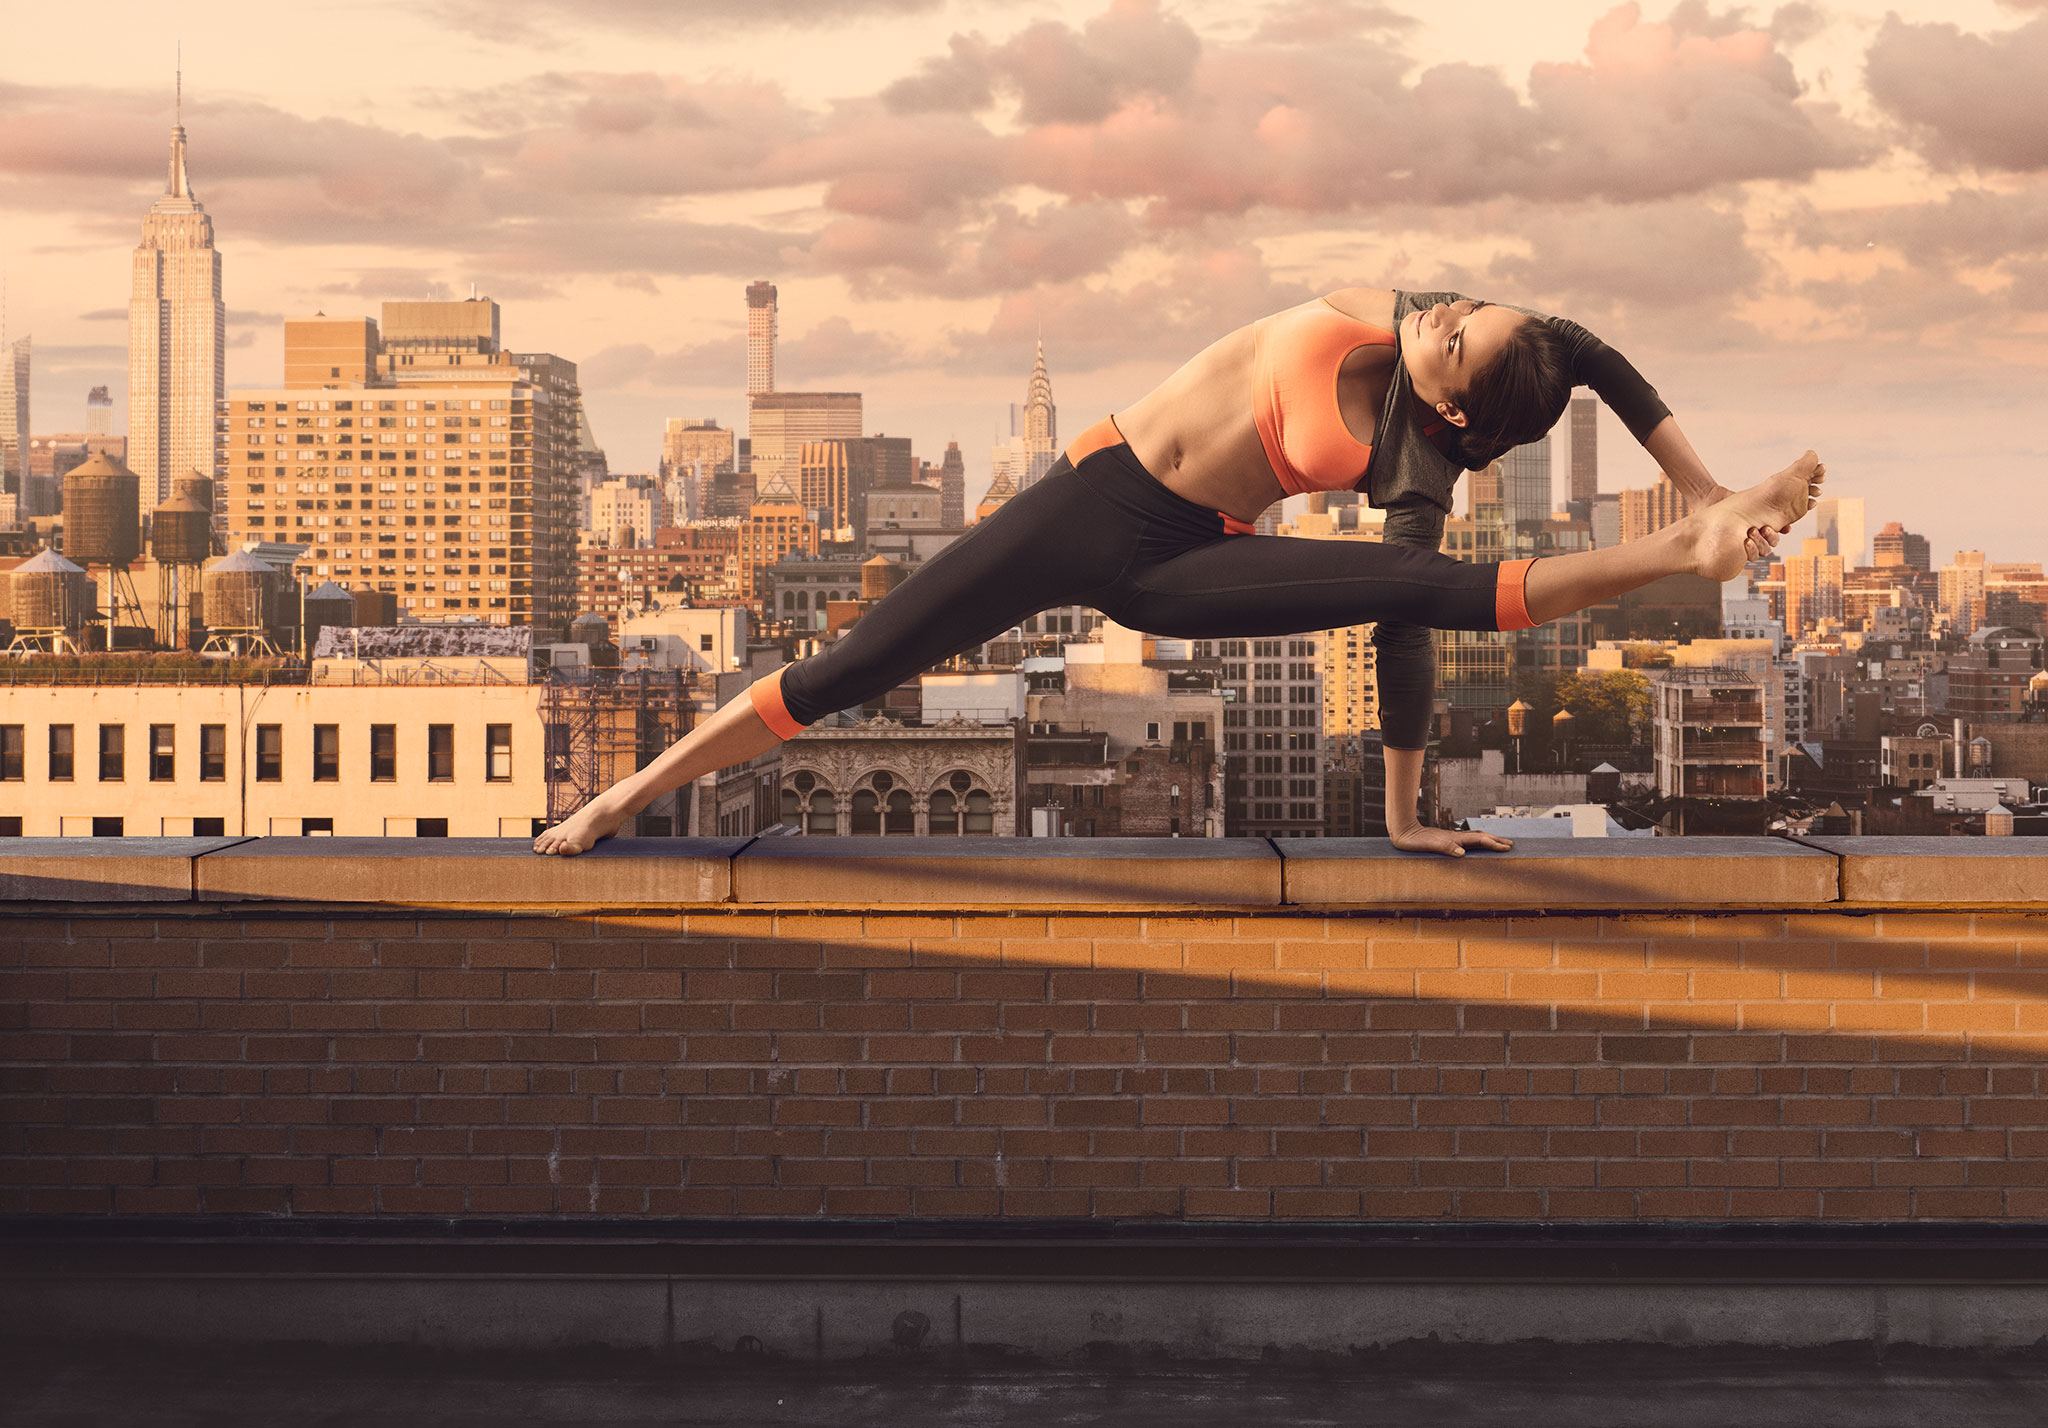 Model Yoga Pose on Building in NYC | Zach Ancell Photography